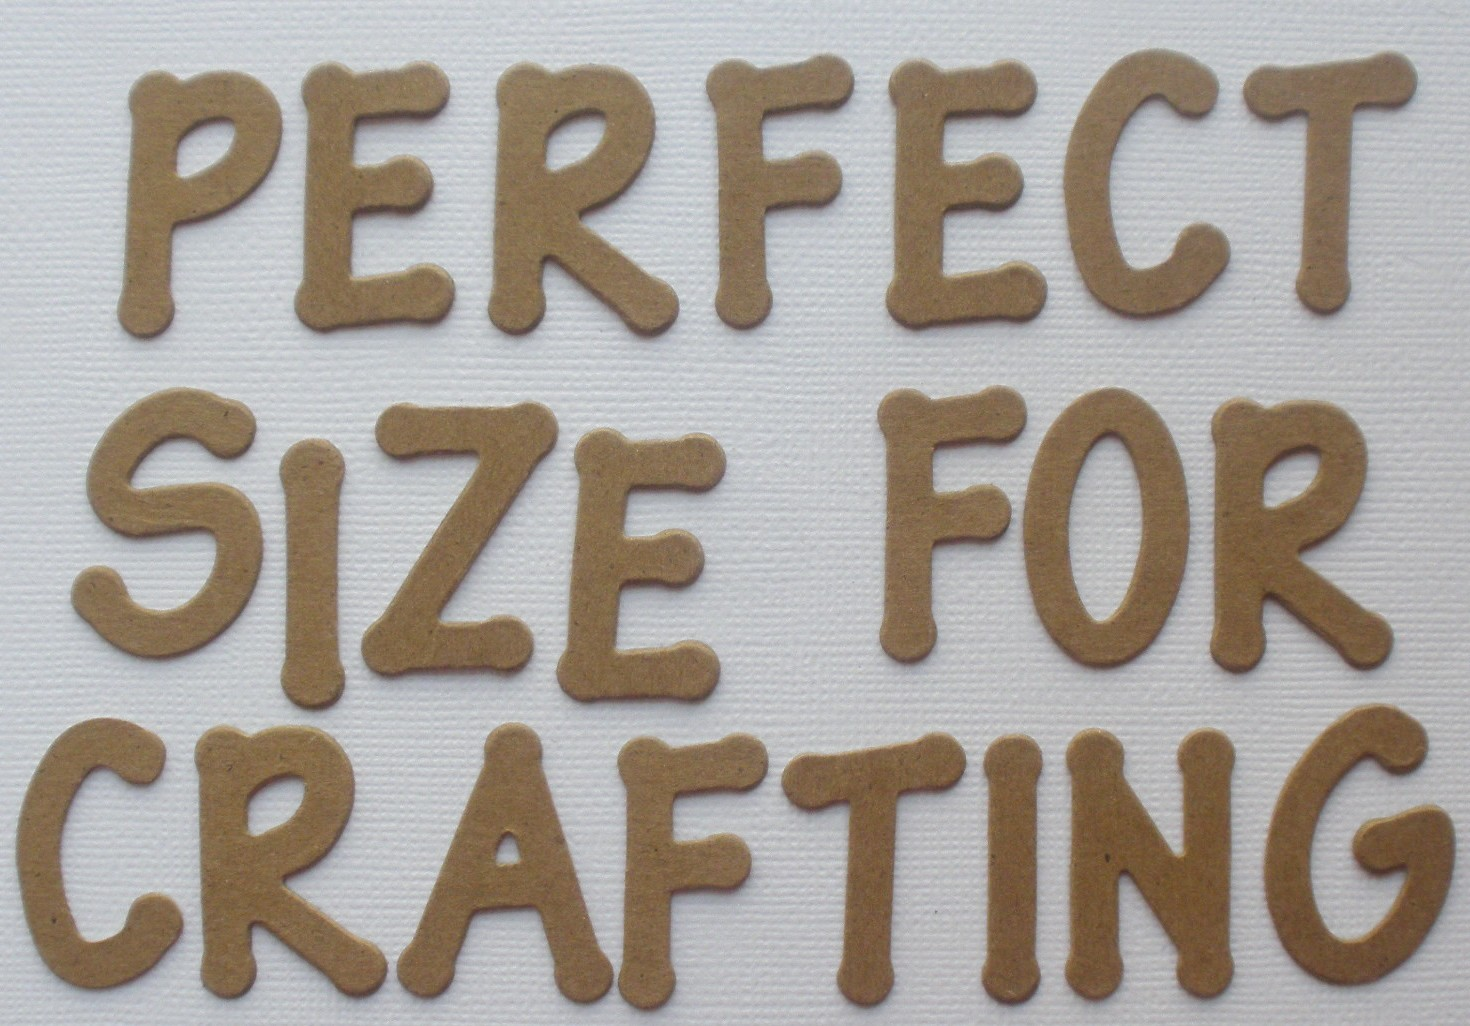 ... Font Customized Alphabet Letters Chipboard Die Cuts 26 PC | eBay